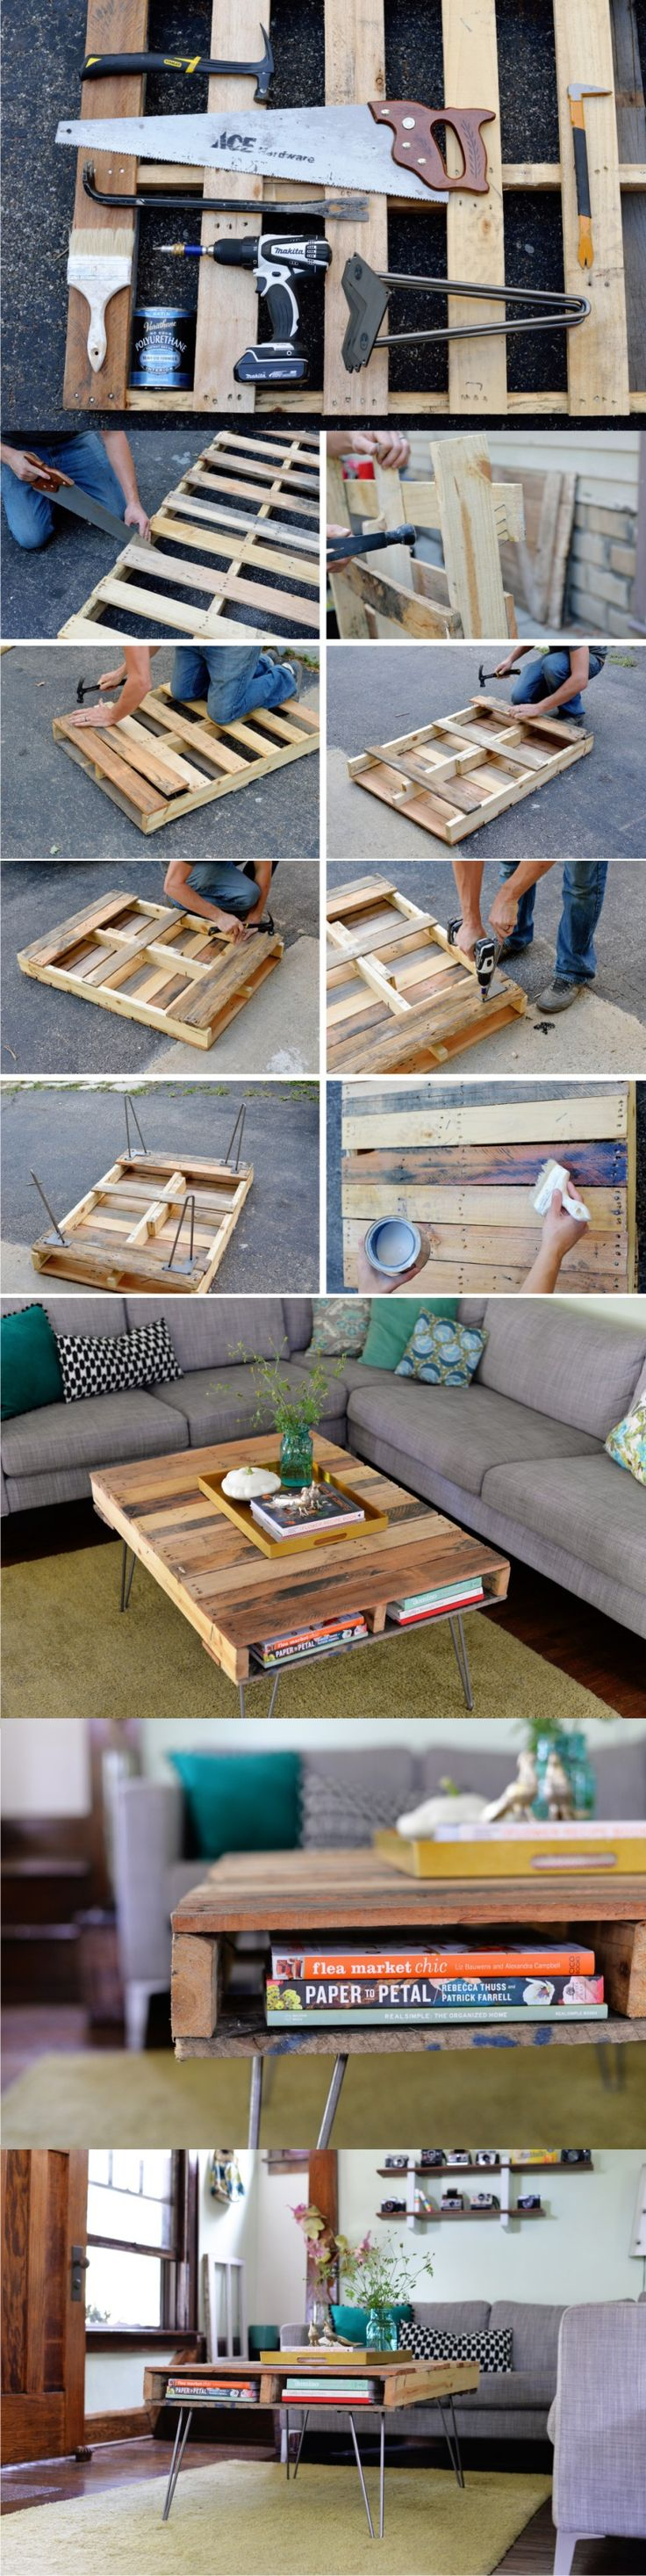 375 best All things pallet images on Pinterest